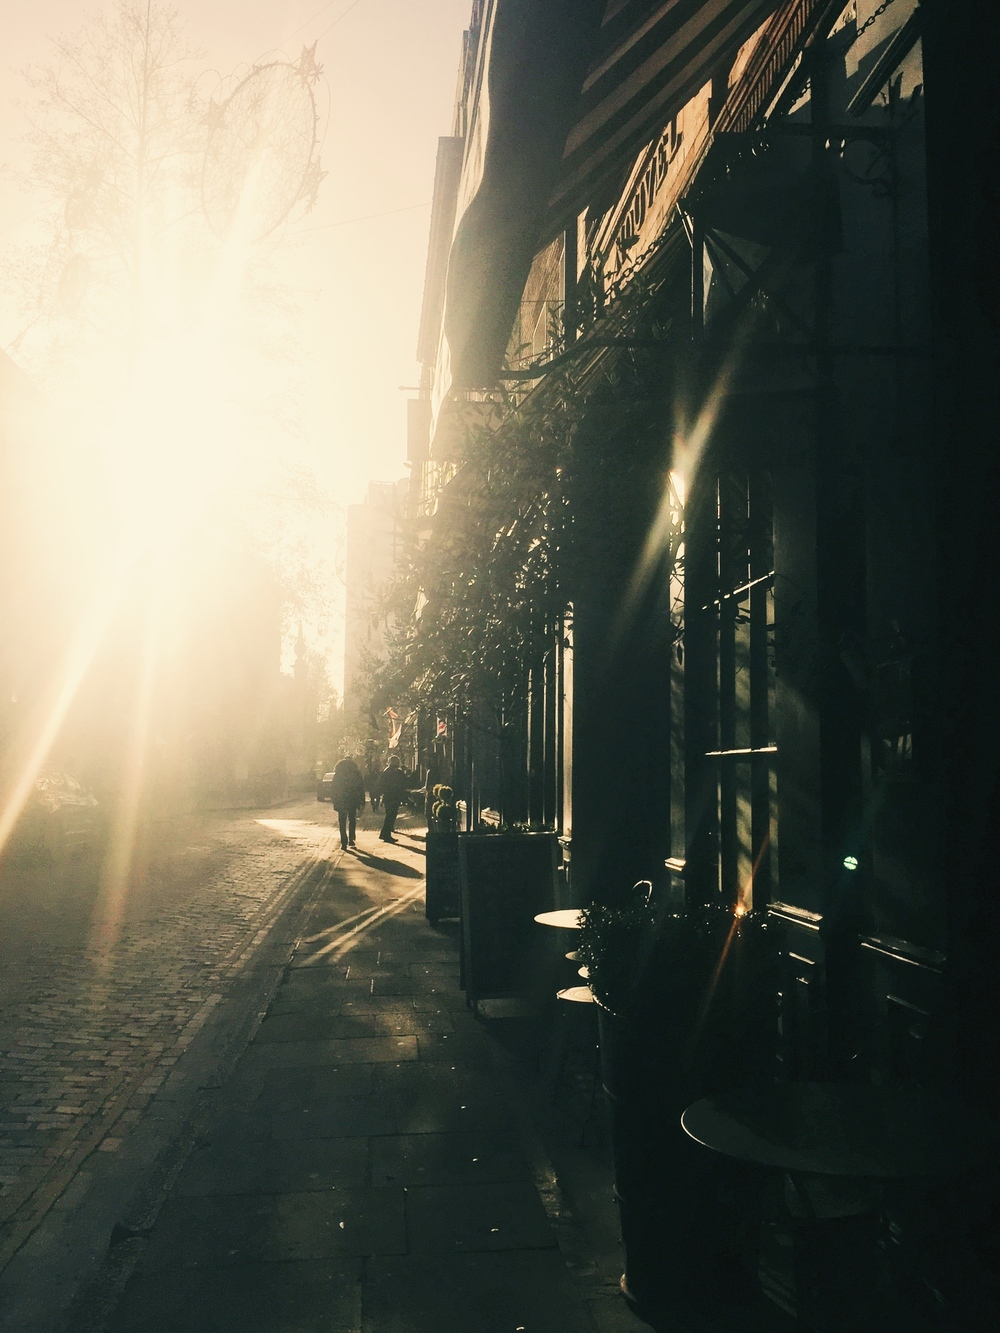 Morning sun on Monmouth street, Seven Dials.